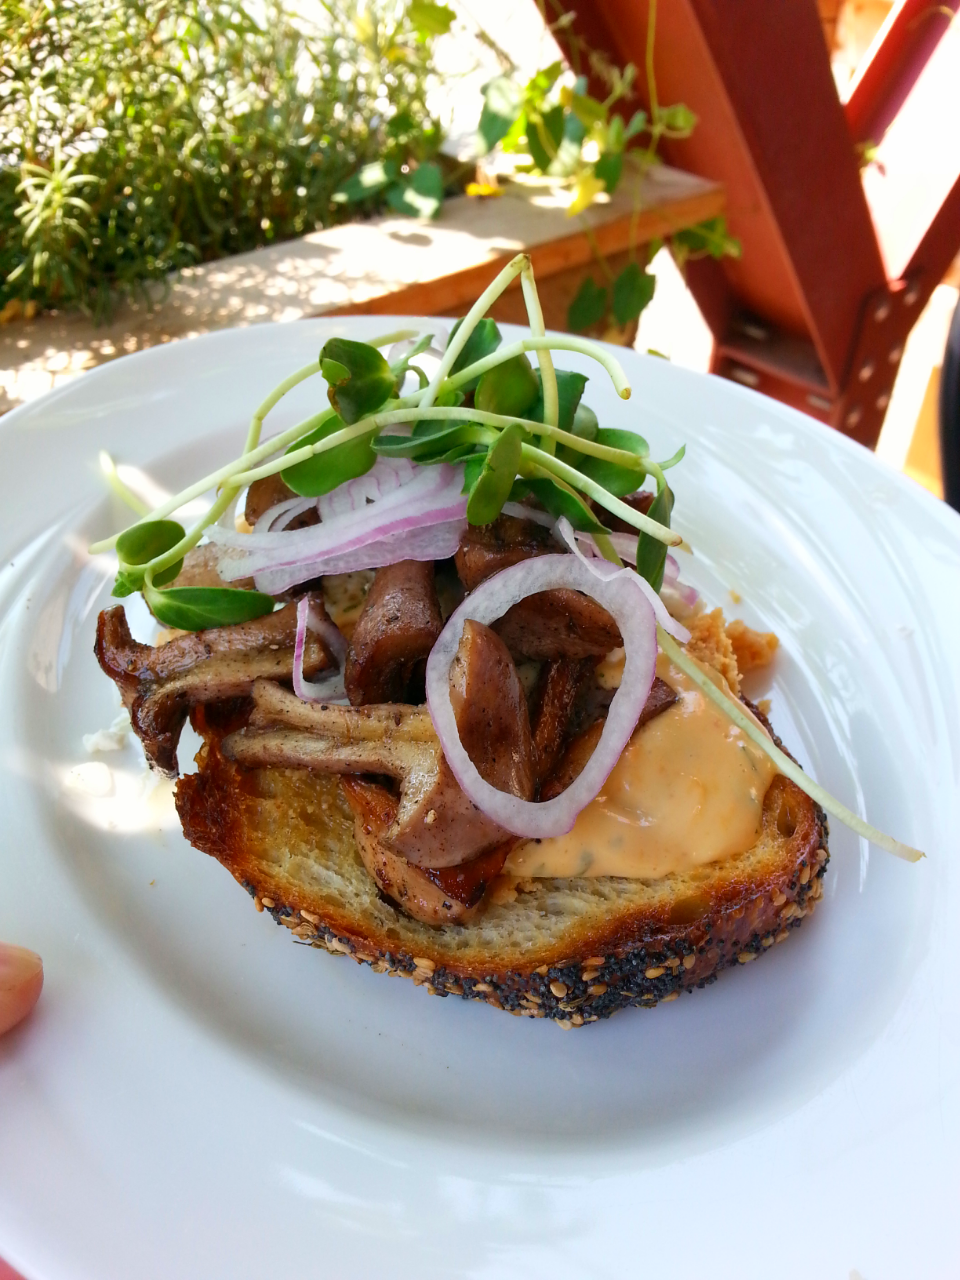 The famous adults-only peanut butter sandwich with roasted bluefoot mushrooms / photo by Michael Mackie